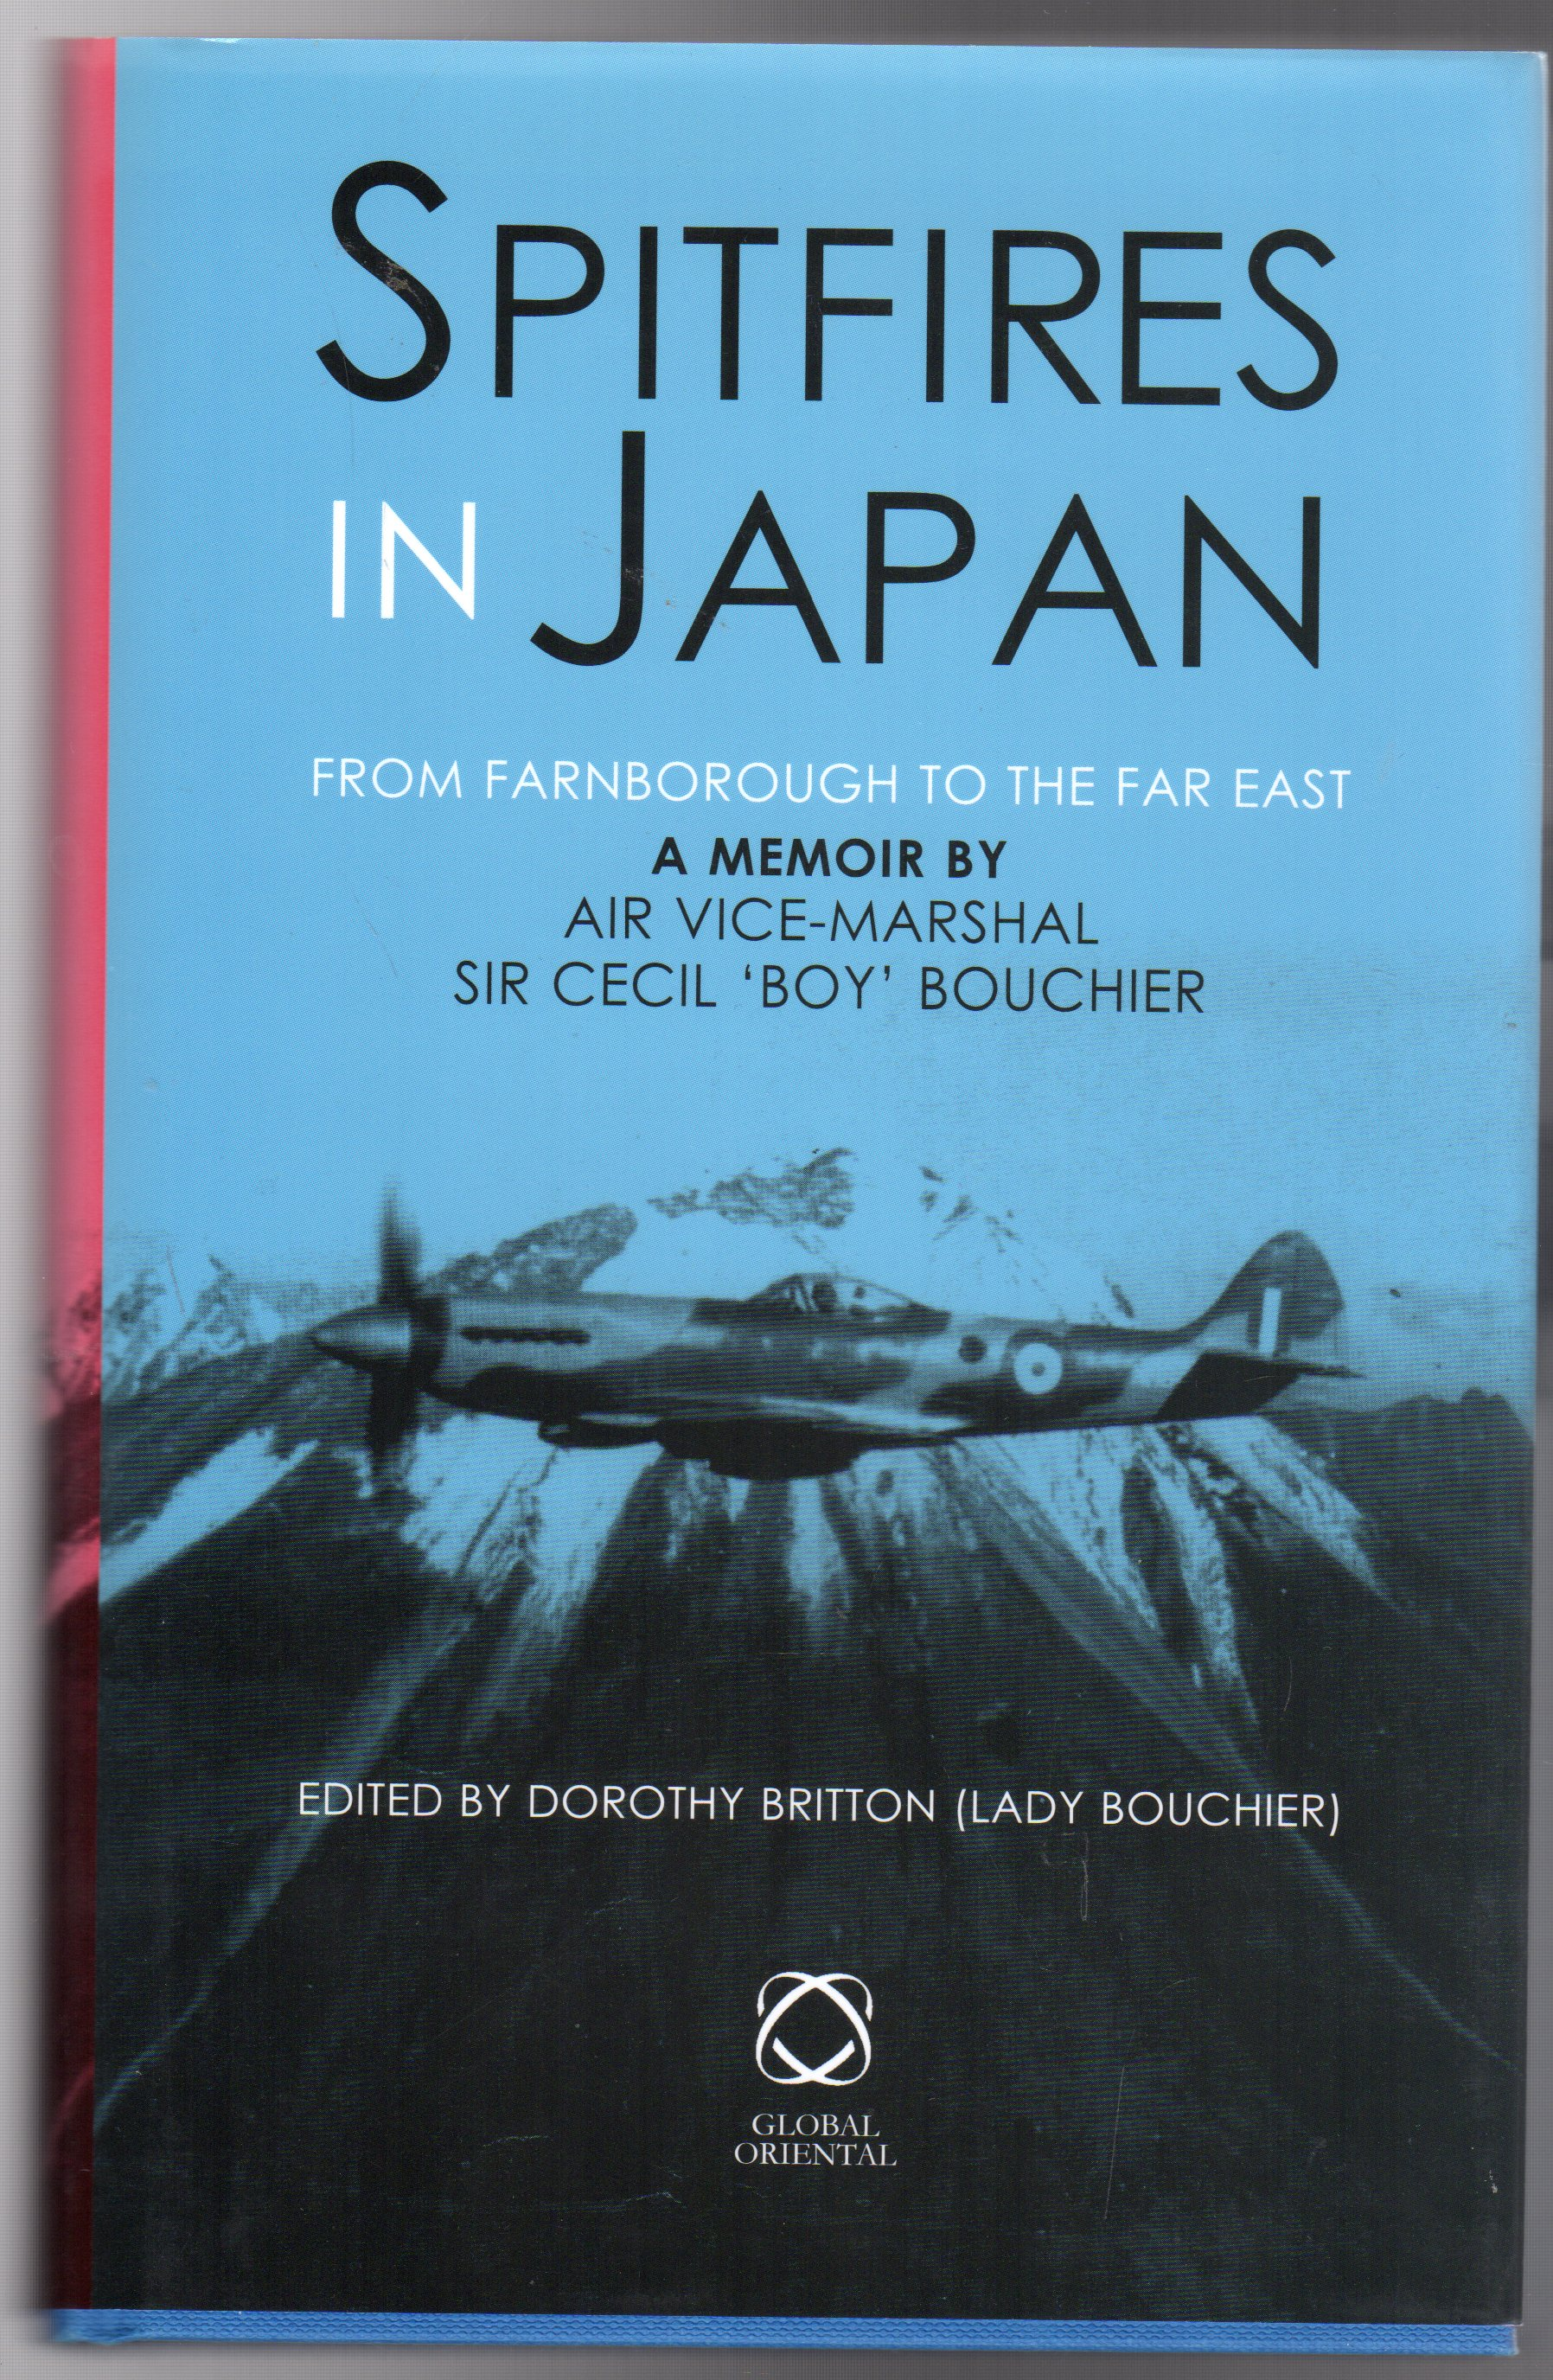 Image for Spitfires in Japan : From Farnborough to the Far East. A Memoir